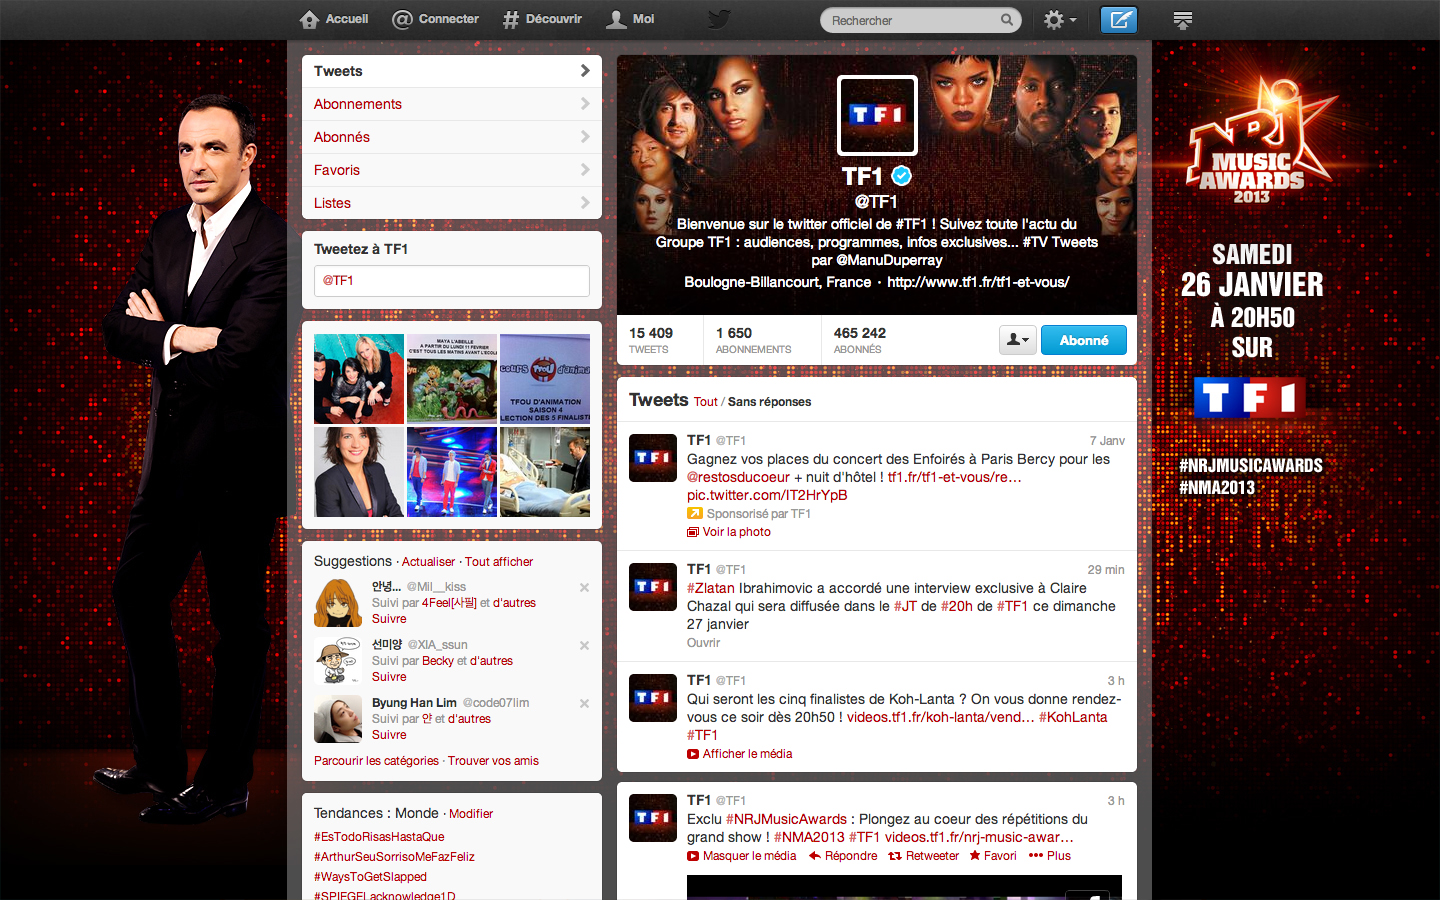 NRJ Music Awards 2013 - Twitter TF1 2